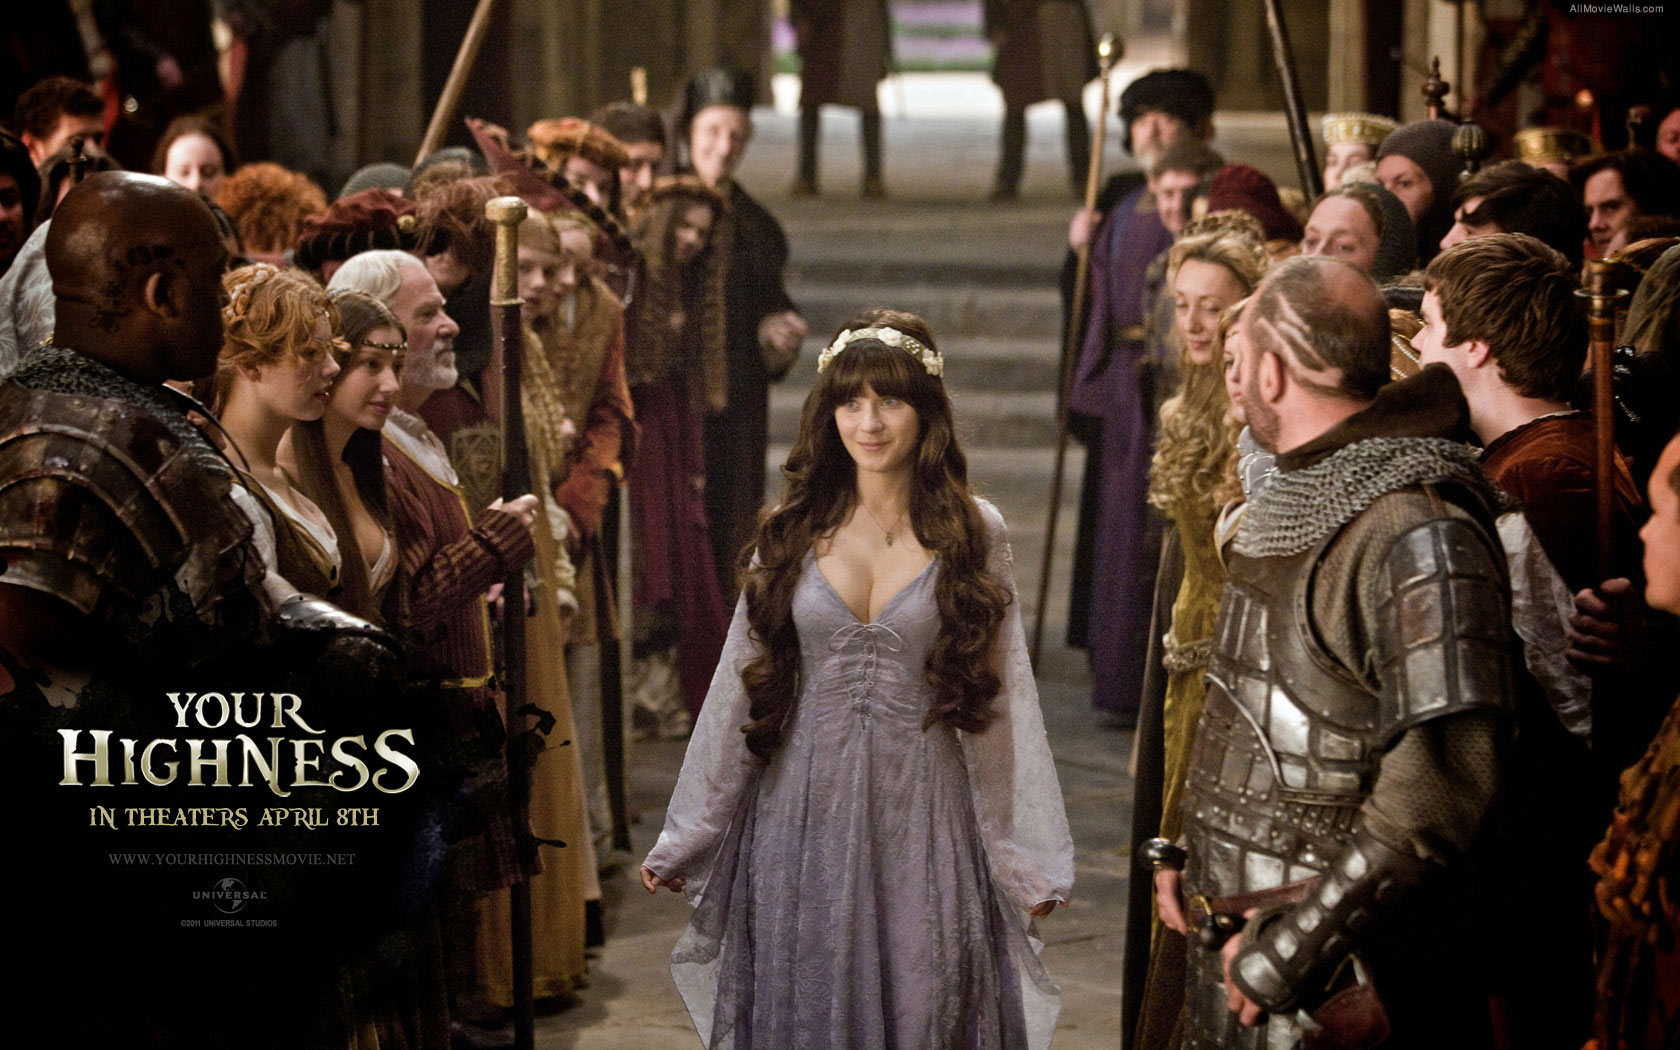 Your Highness - Movies Wallpaper (25401030) - Fanpop